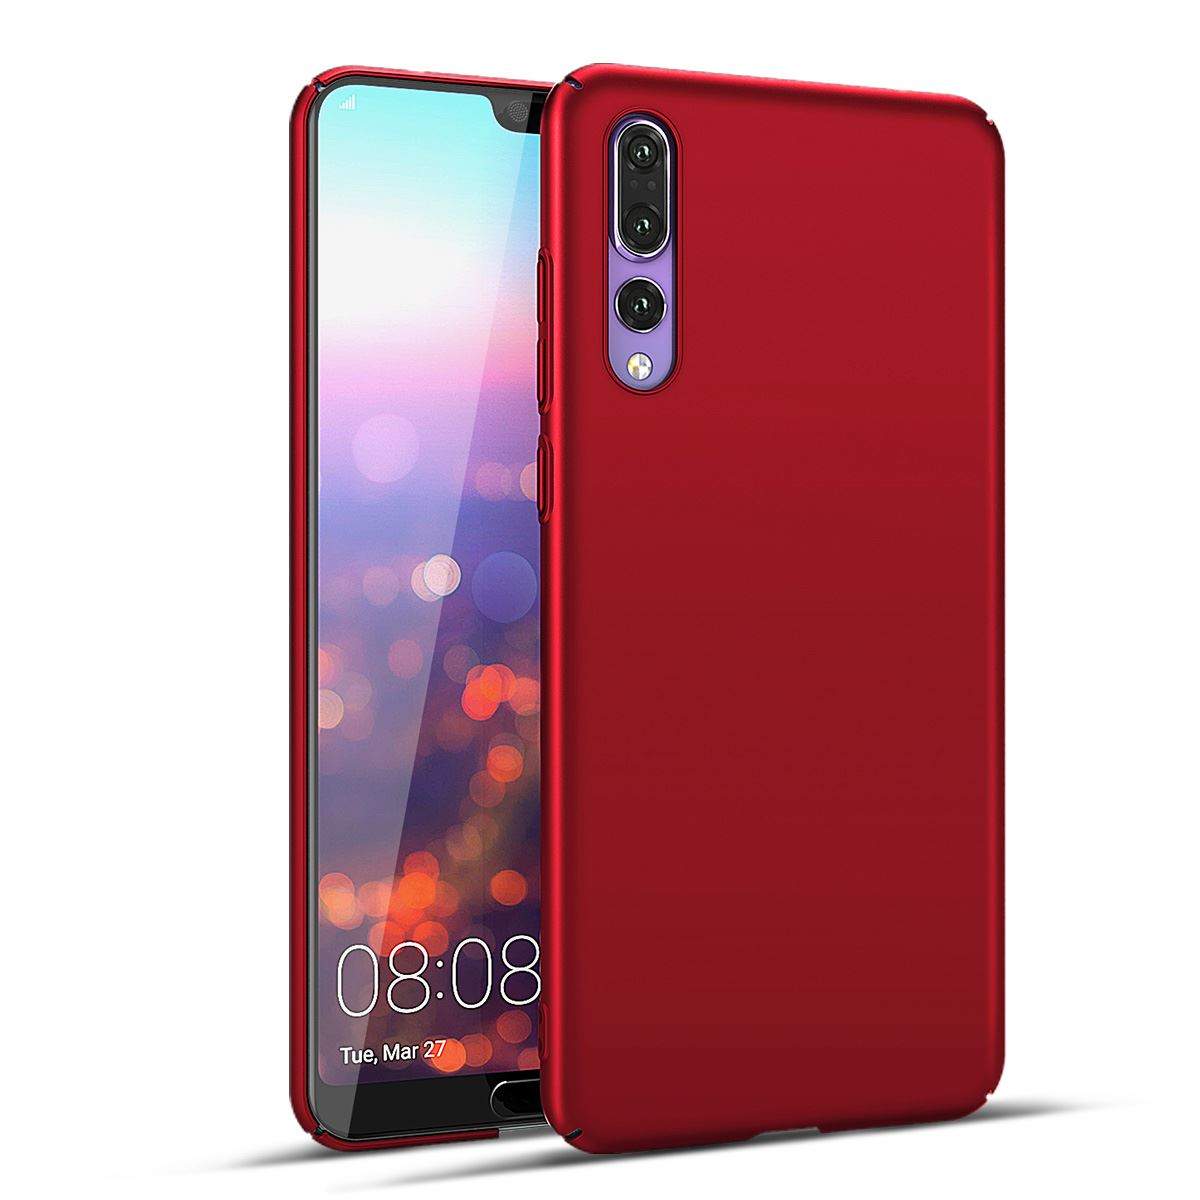 Luxury-Protective-Slim-Thin-Hard-Back-Case-Cover-For-Huawei-P20-Pro-P10-P-Smart thumbnail 28